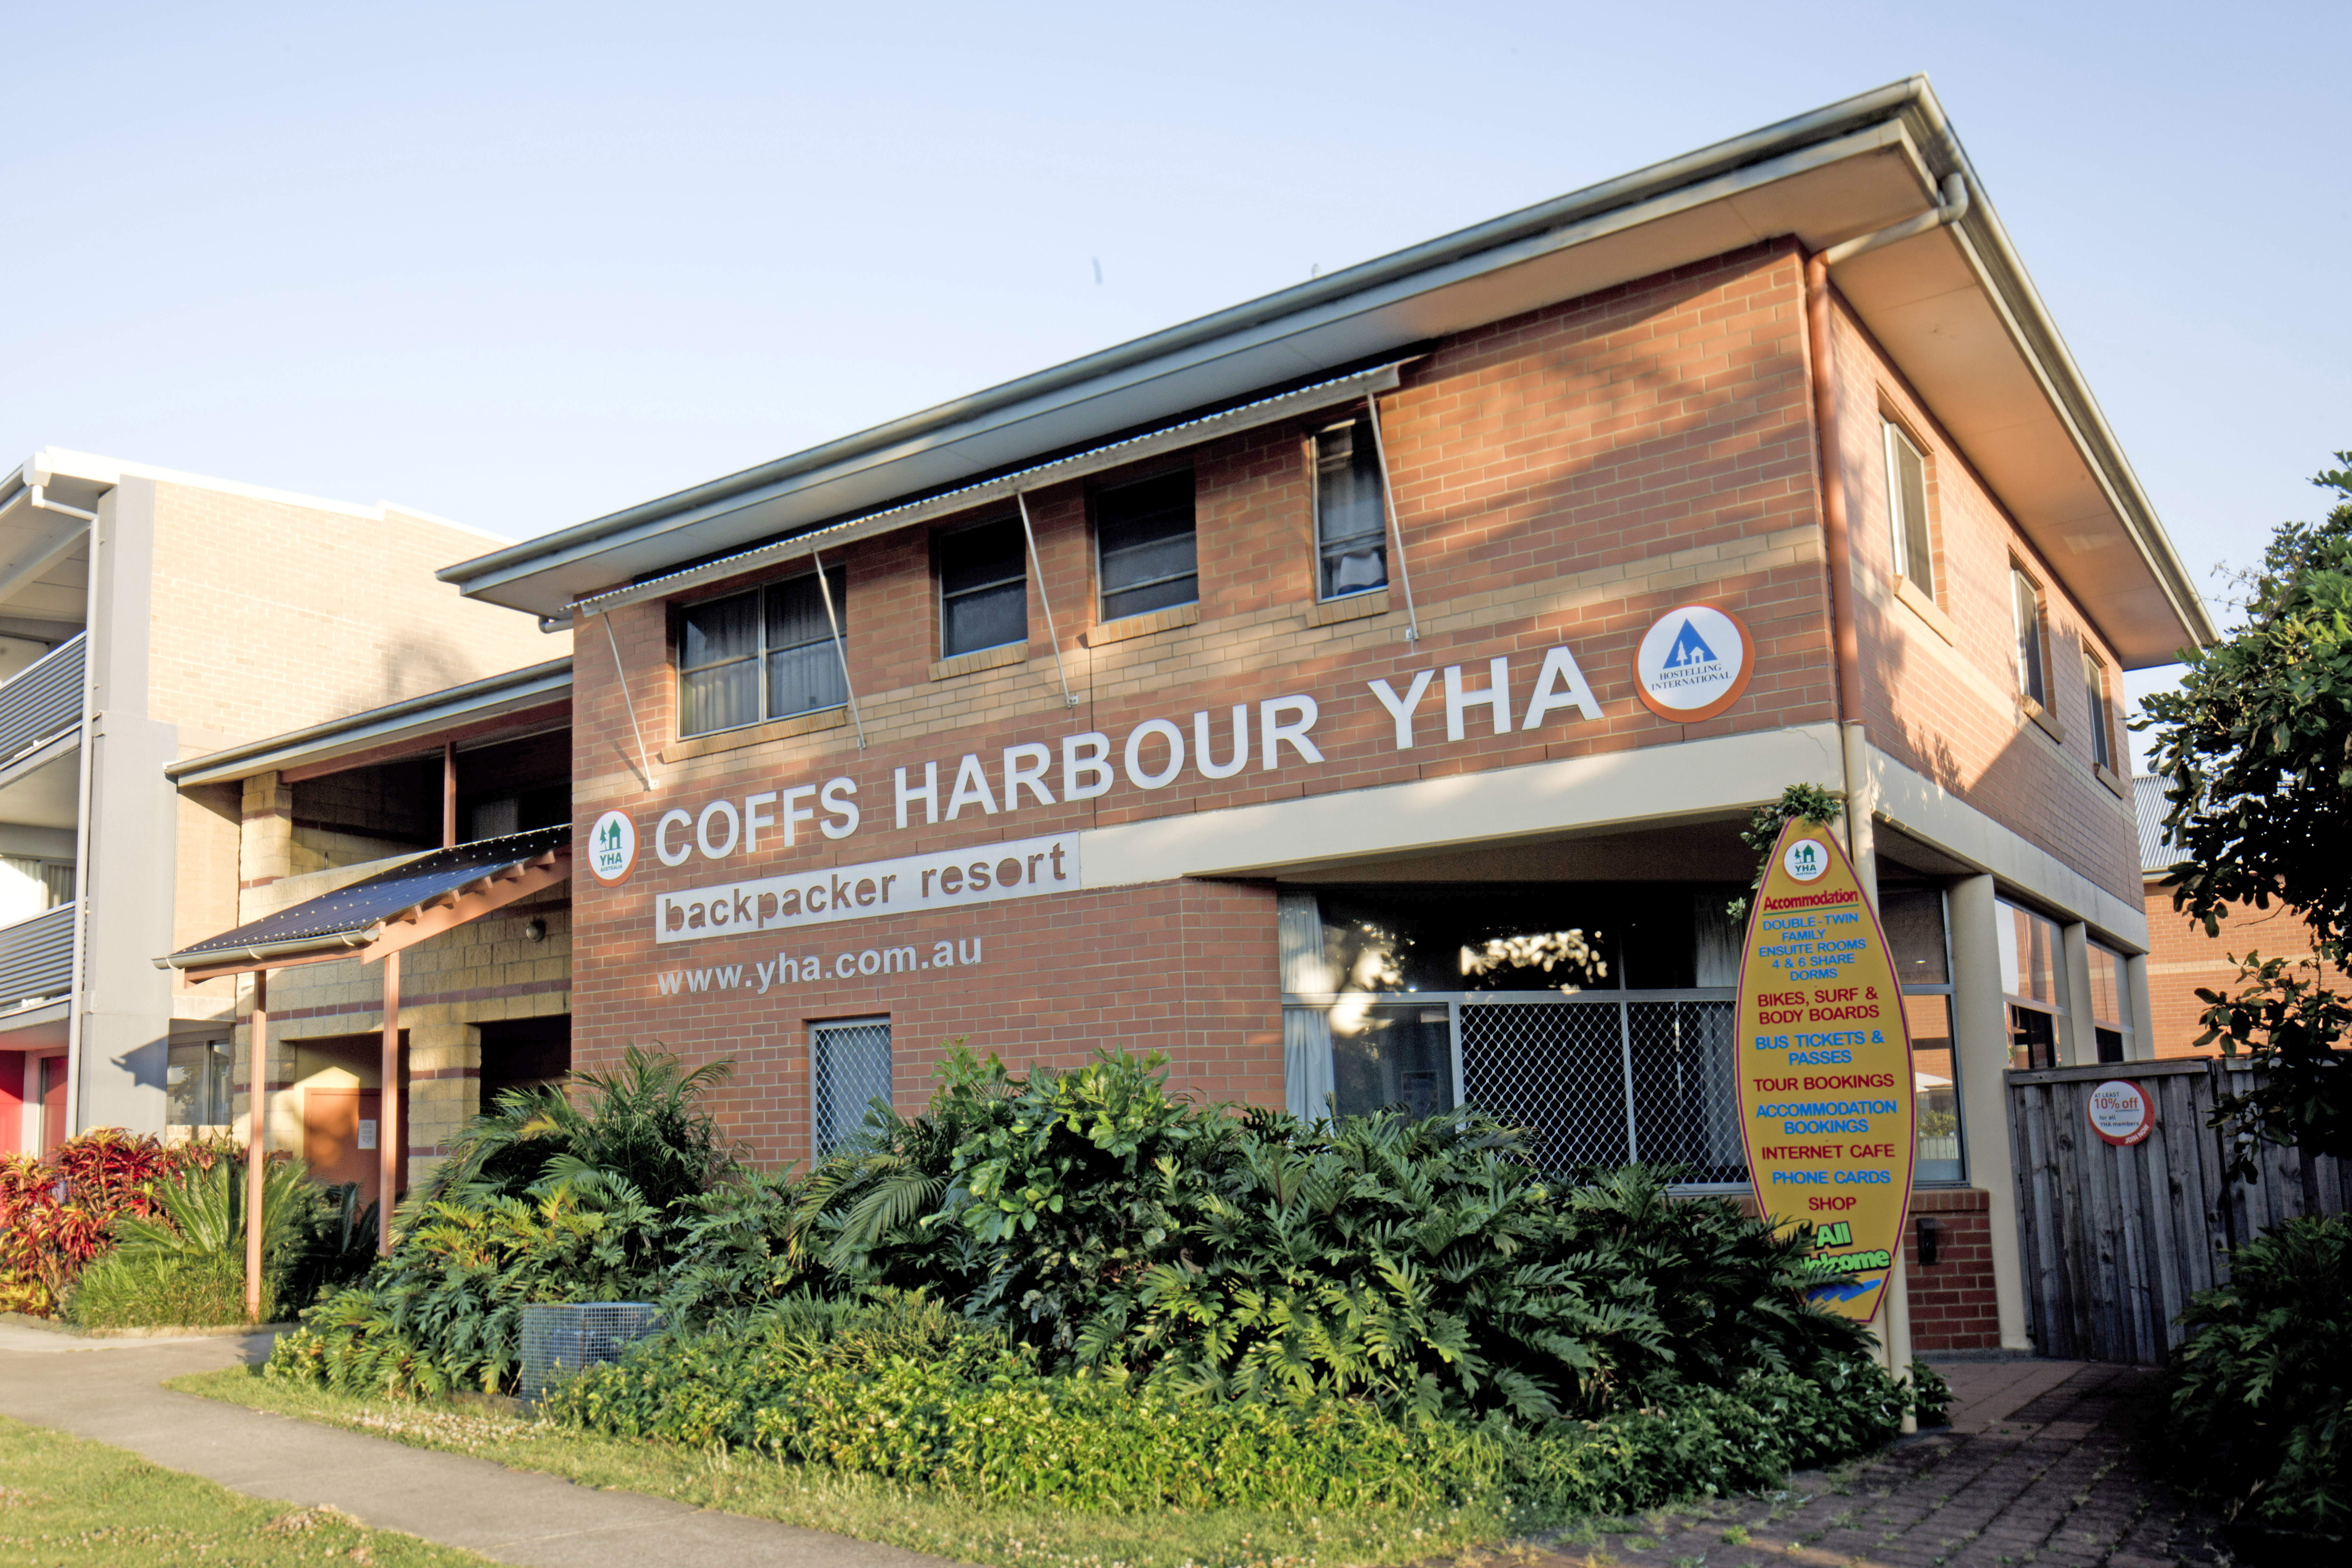 Coffs Harbour YHA Backpackers Resort